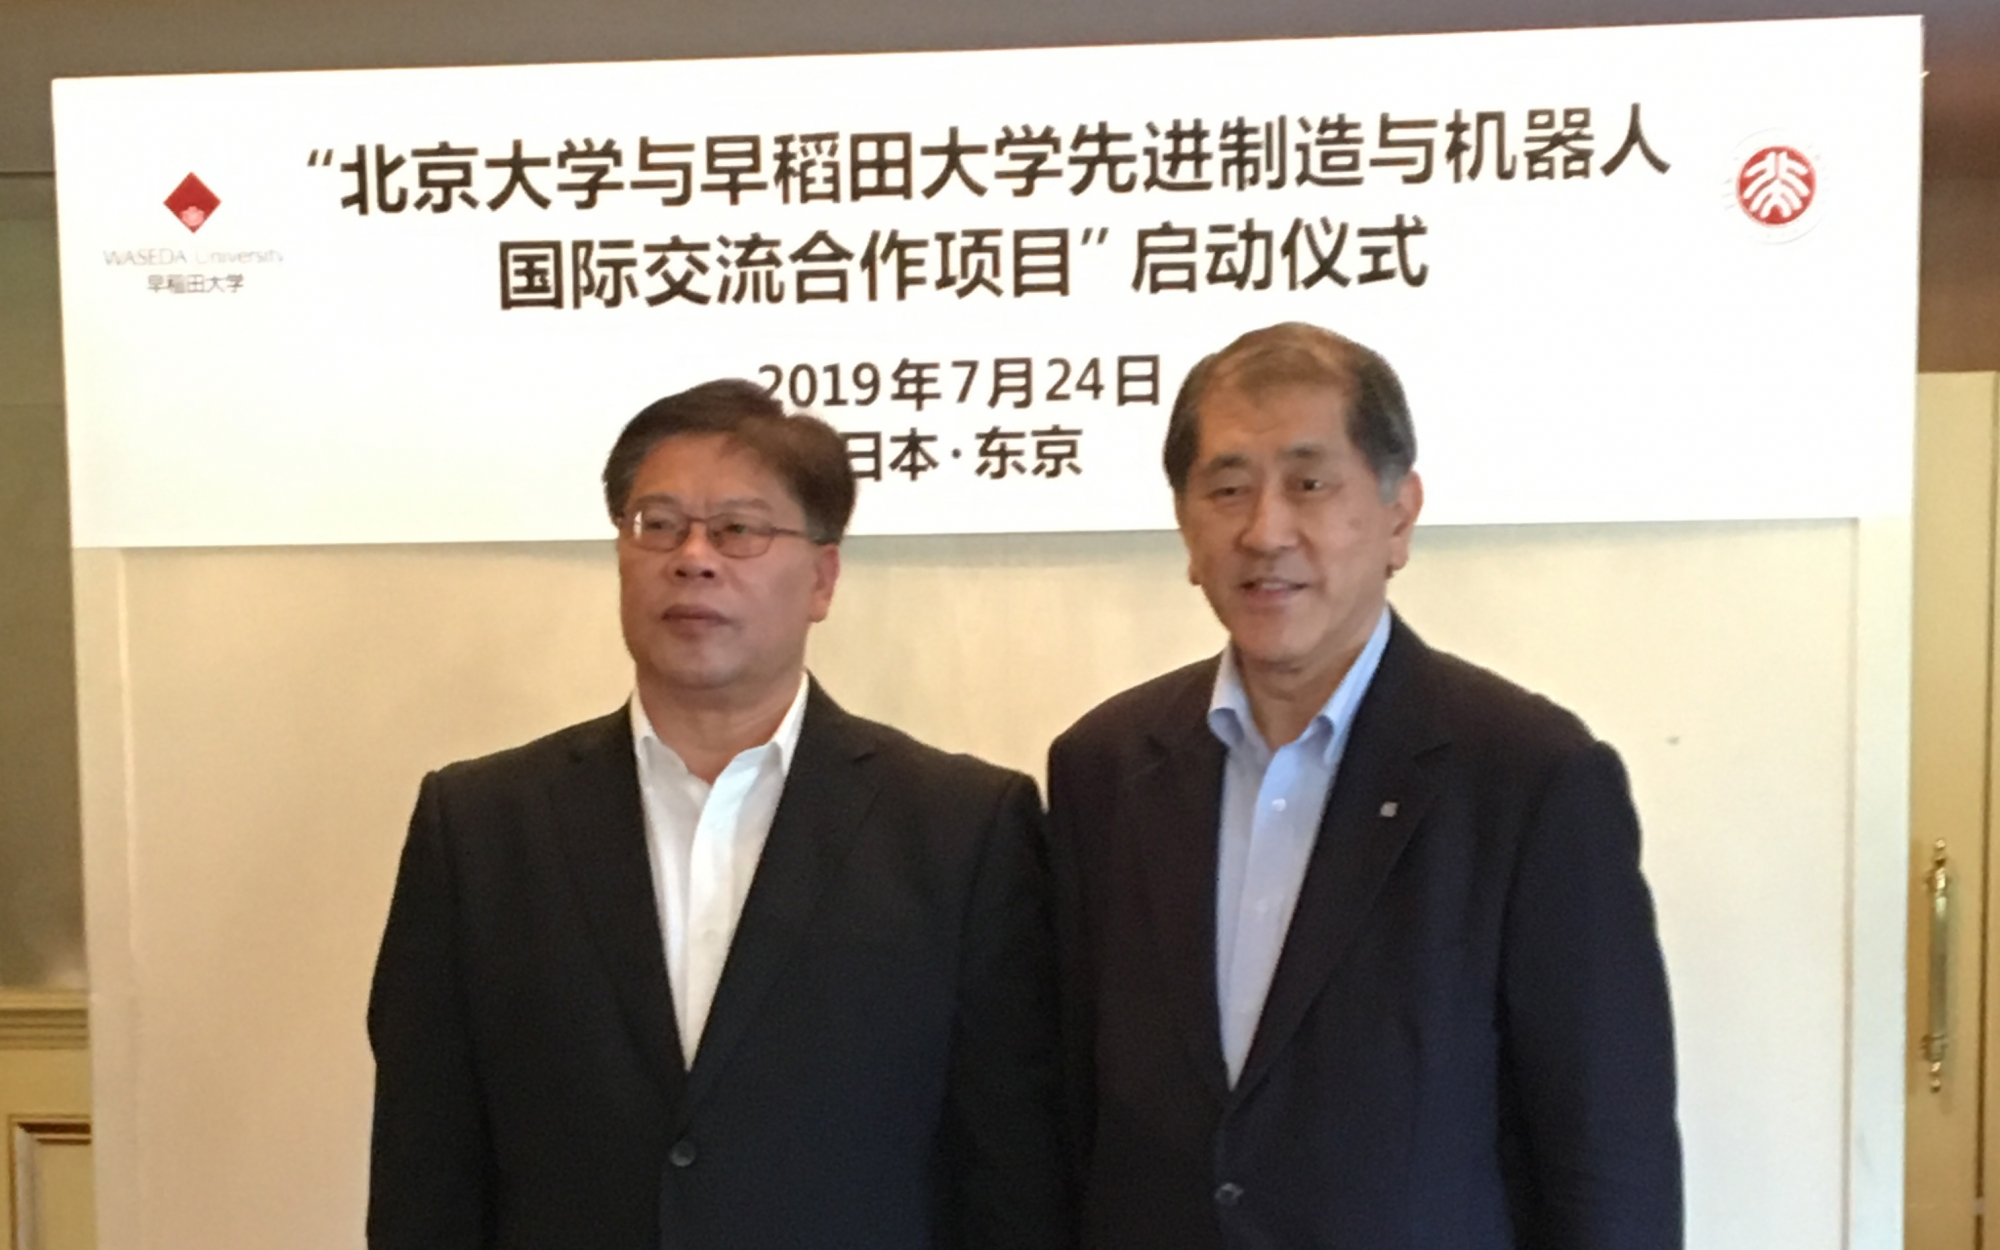 Peking University's Chair of University Council visits Waseda